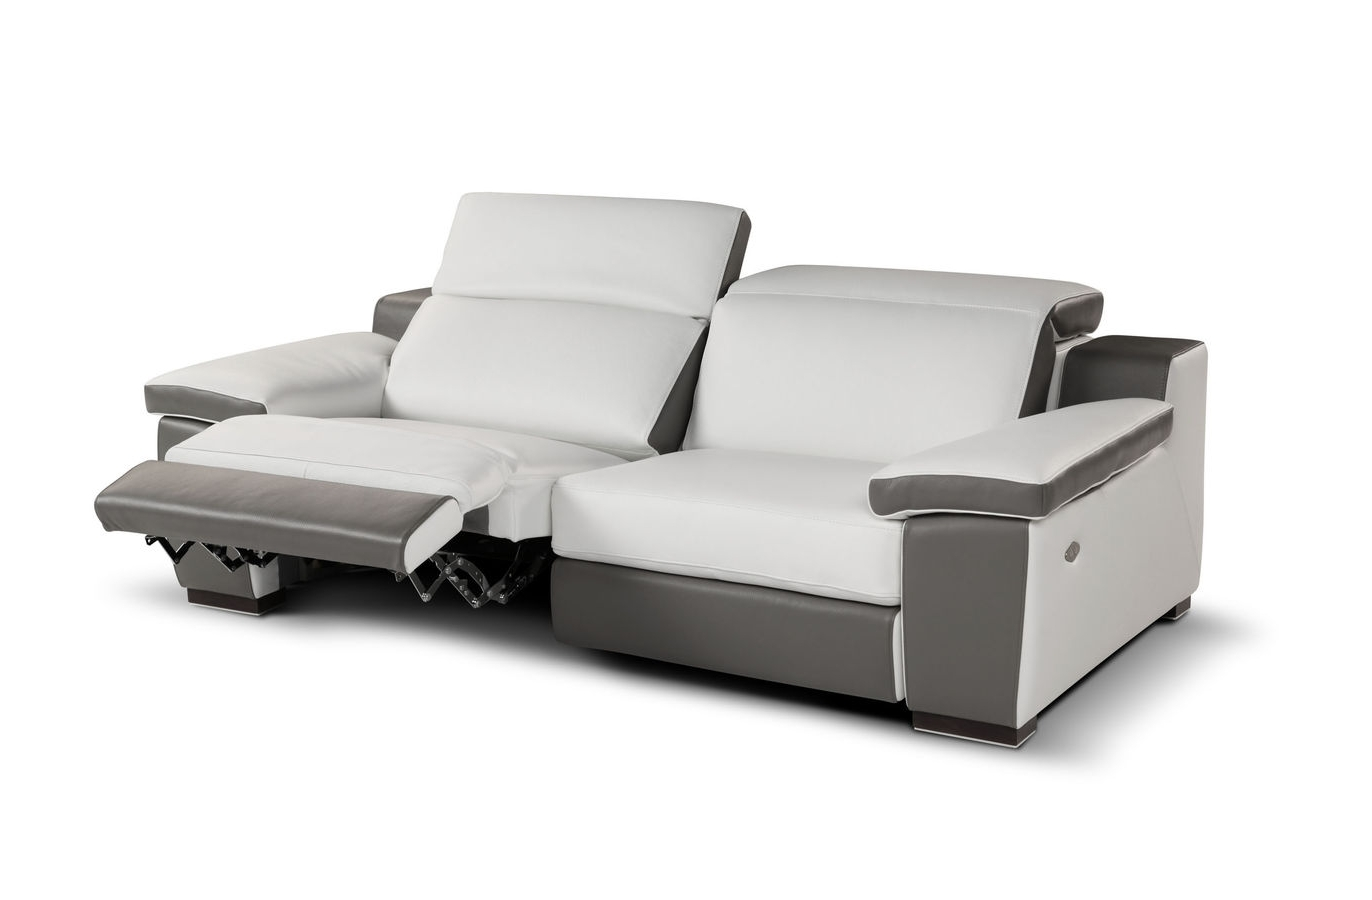 2018 Sofa: Remarkable Reclining Leather Sofa Leather Recliners On Sale Throughout Modern Reclining Leather Sofas (View 14 of 20)